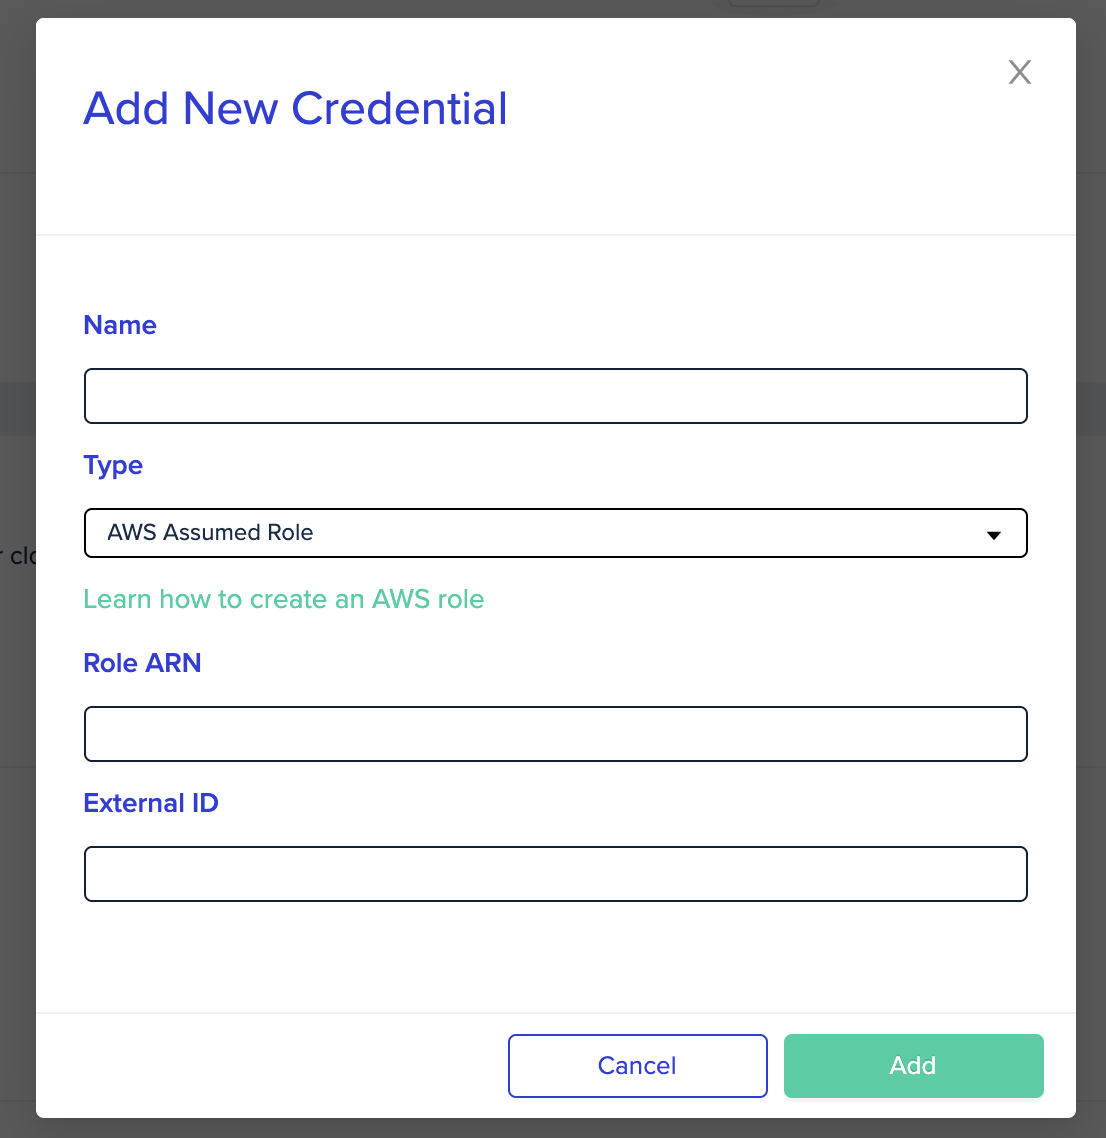 Adding an AWS Cost Credential